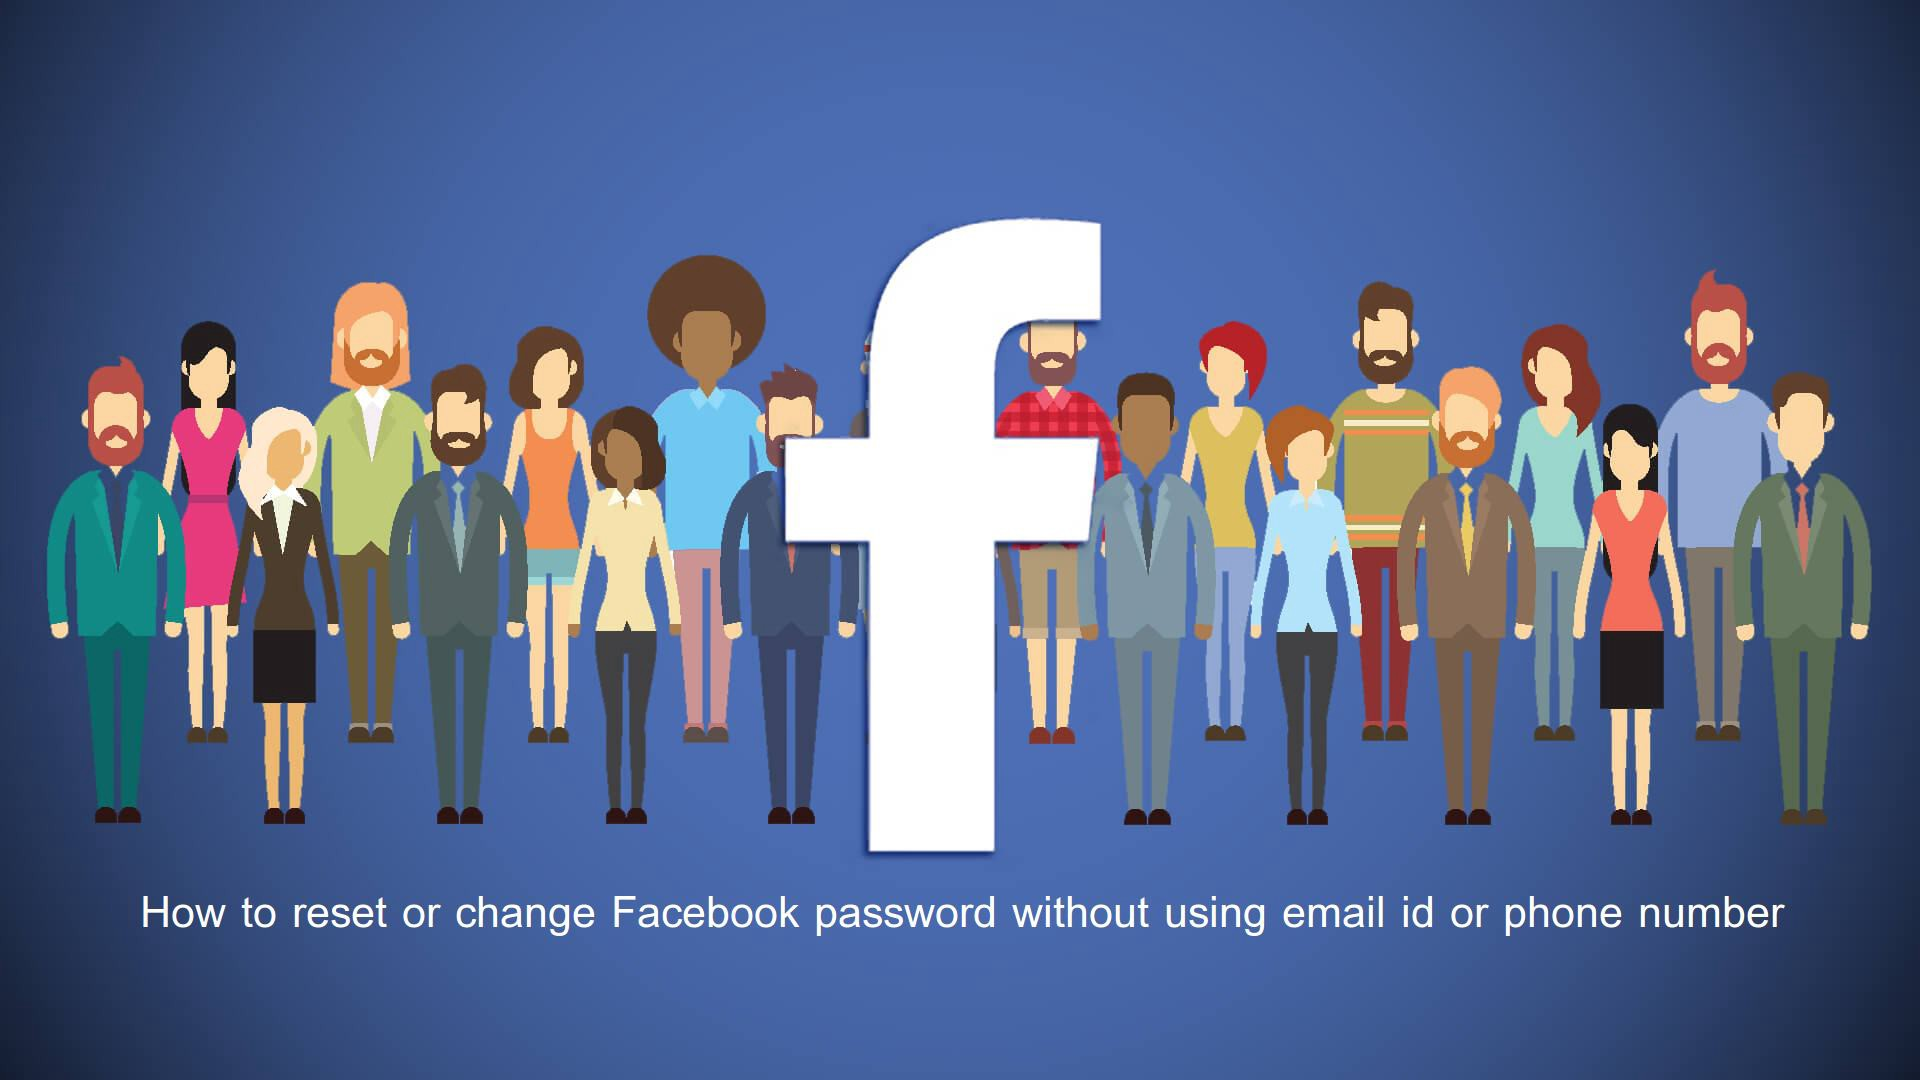 Way to Reset Facebook password without email - kite ross